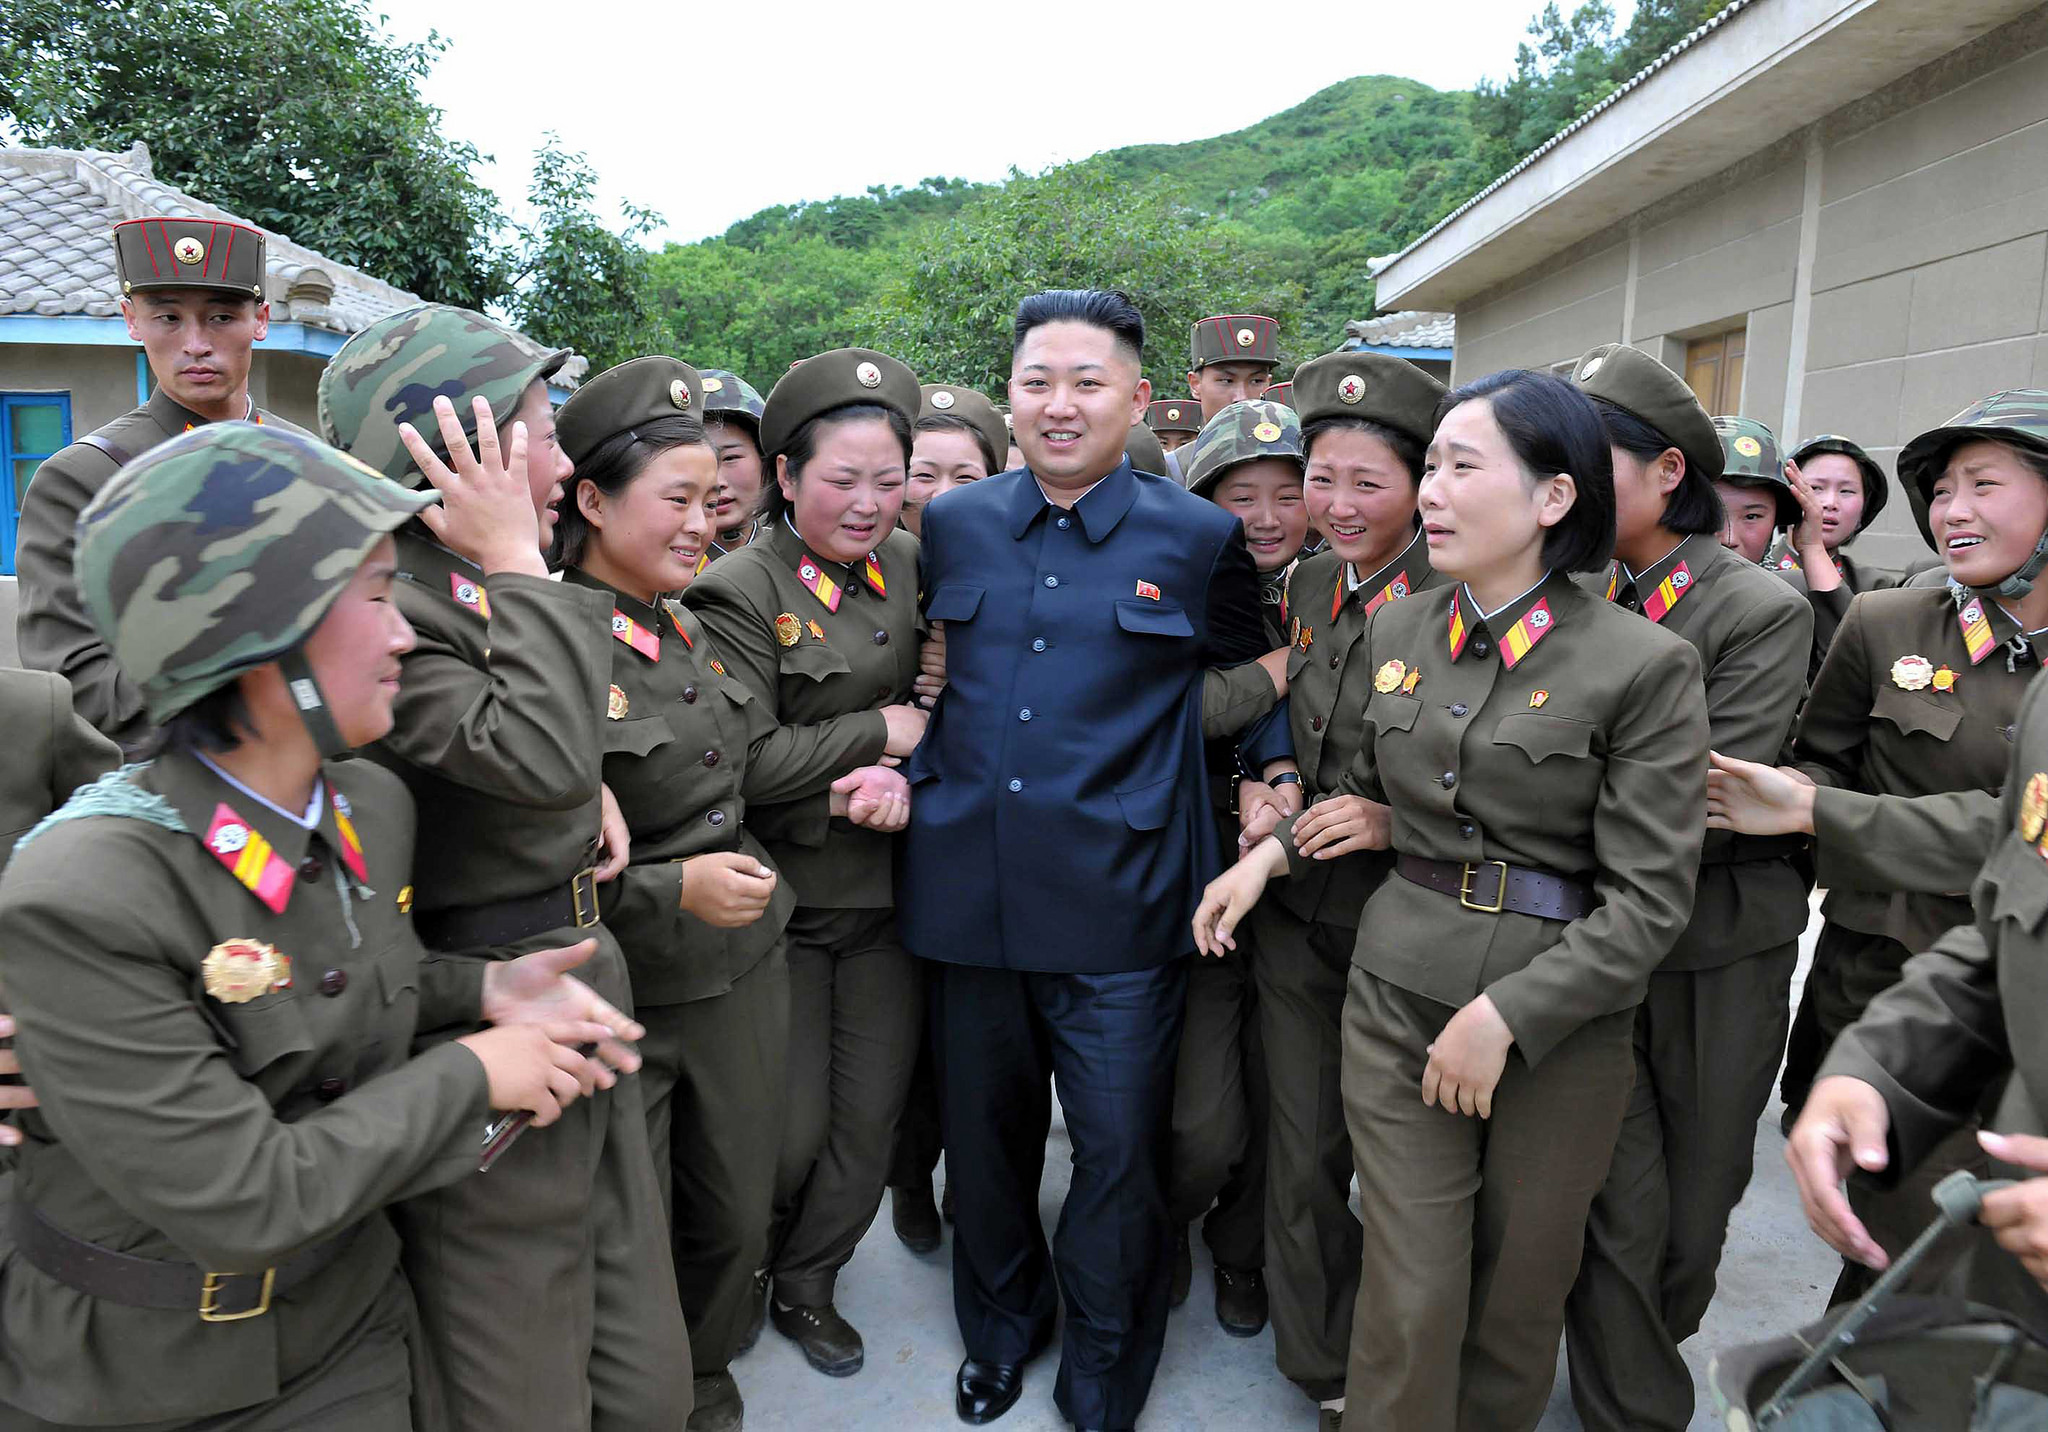 Kim Jong-Un visits the Revolutionary Persimmon Tree in 2012. https://flic.kr/p/Q8zWV2